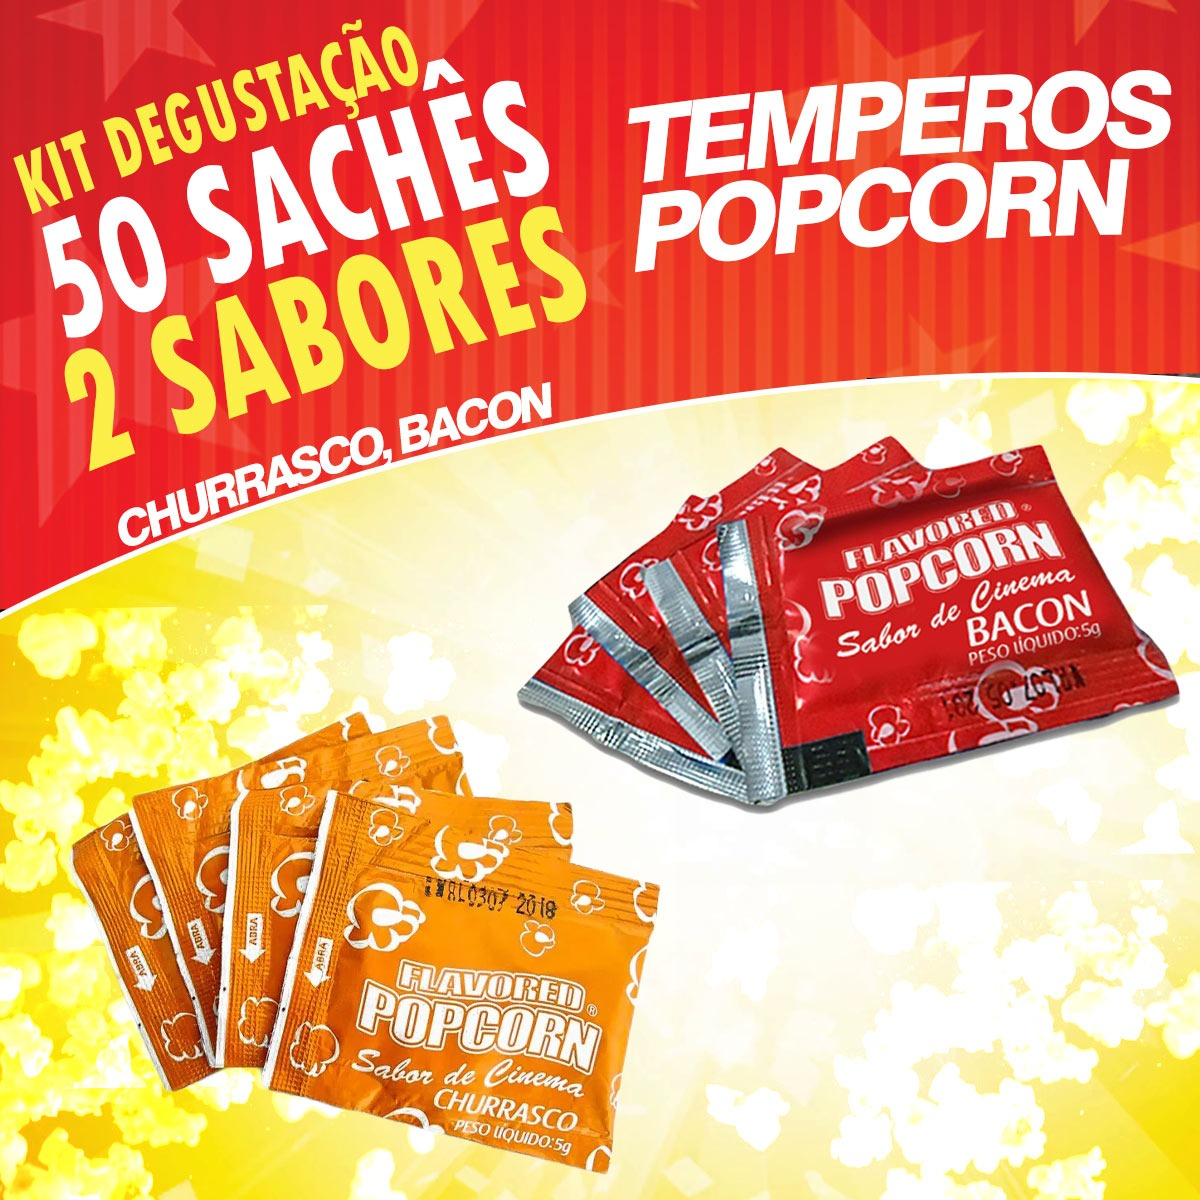 Temperos Popcorn 50 sachês. 25 Churrasco e 25 Bacon.